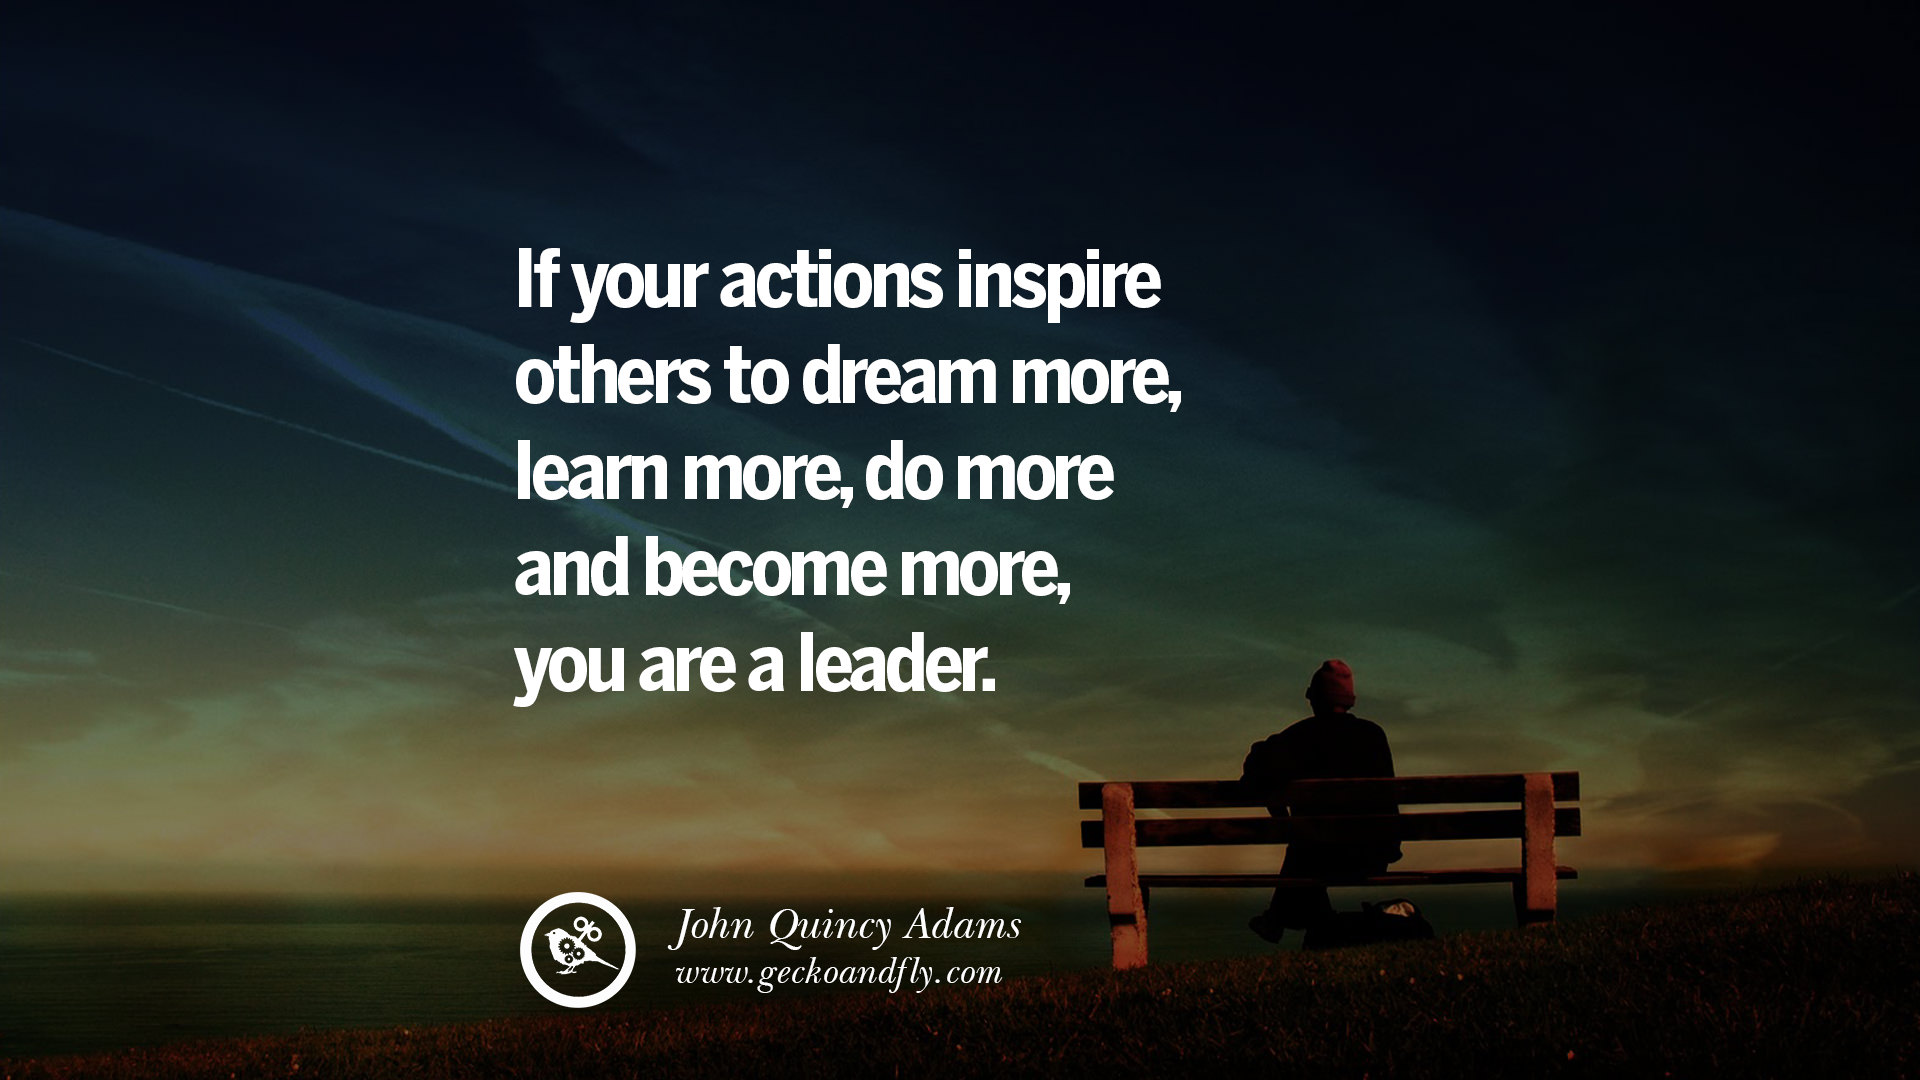 Inspiring Leadership Quotes Simple 18 Uplifting And Motivational Quotes On Management Leadership